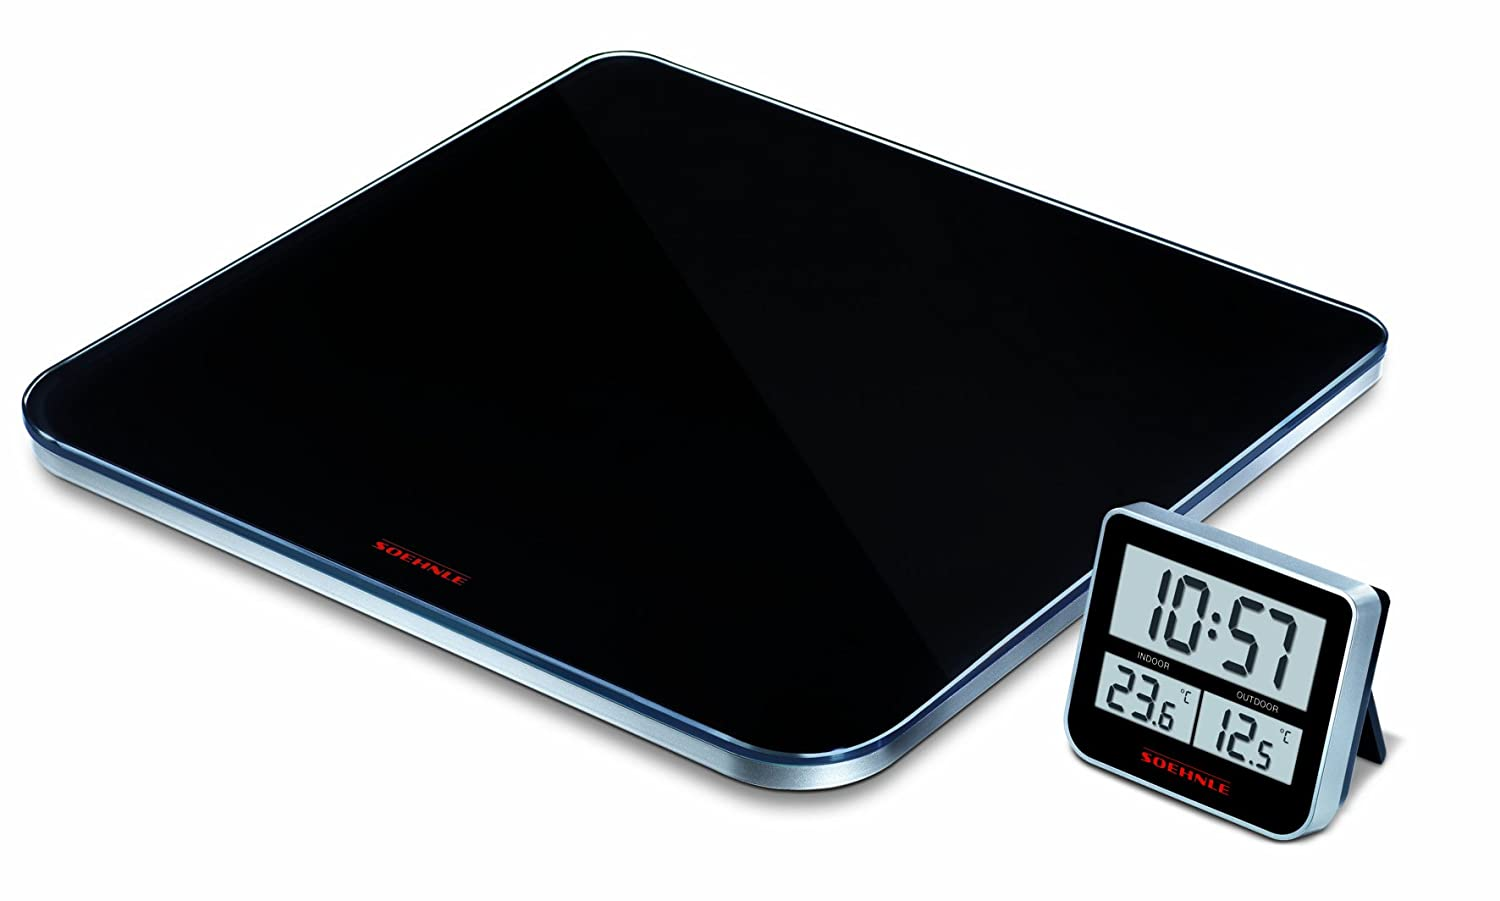 Soehnle 63310 Electronic Personal Bathroom Scale